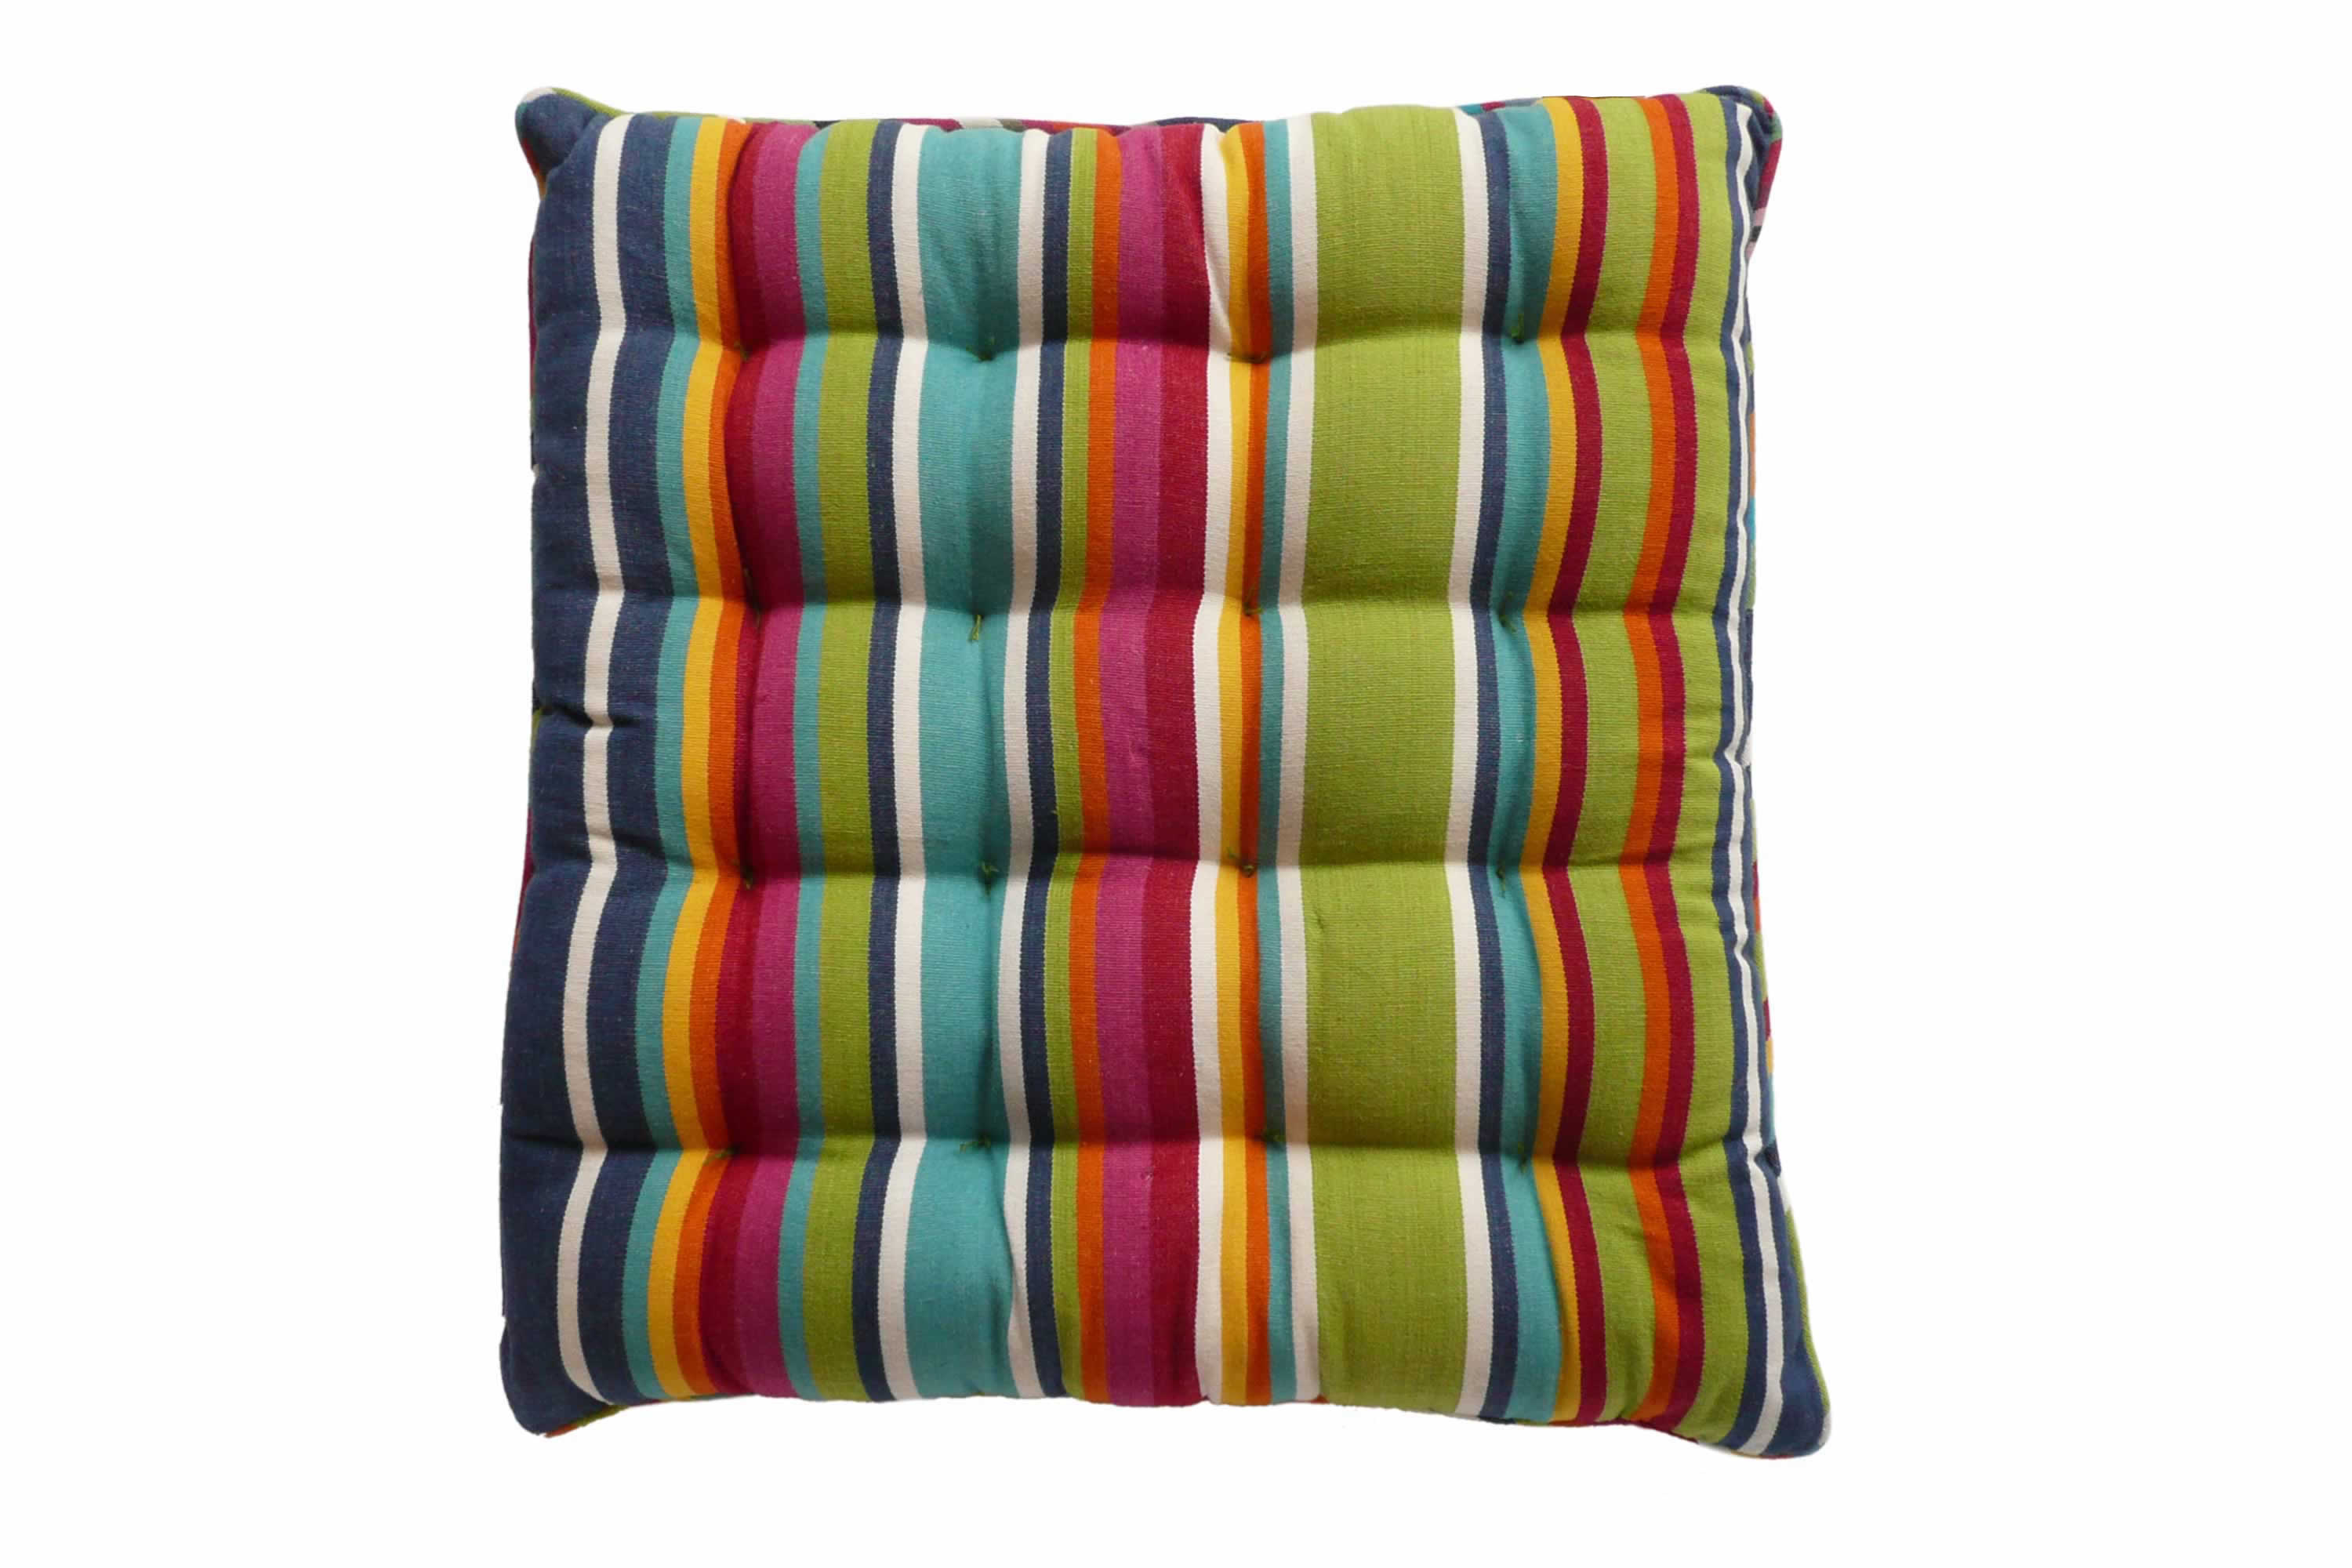 Colourful Striped Seat Pads with Piping | Square Piped Seat Pads blue, green, red